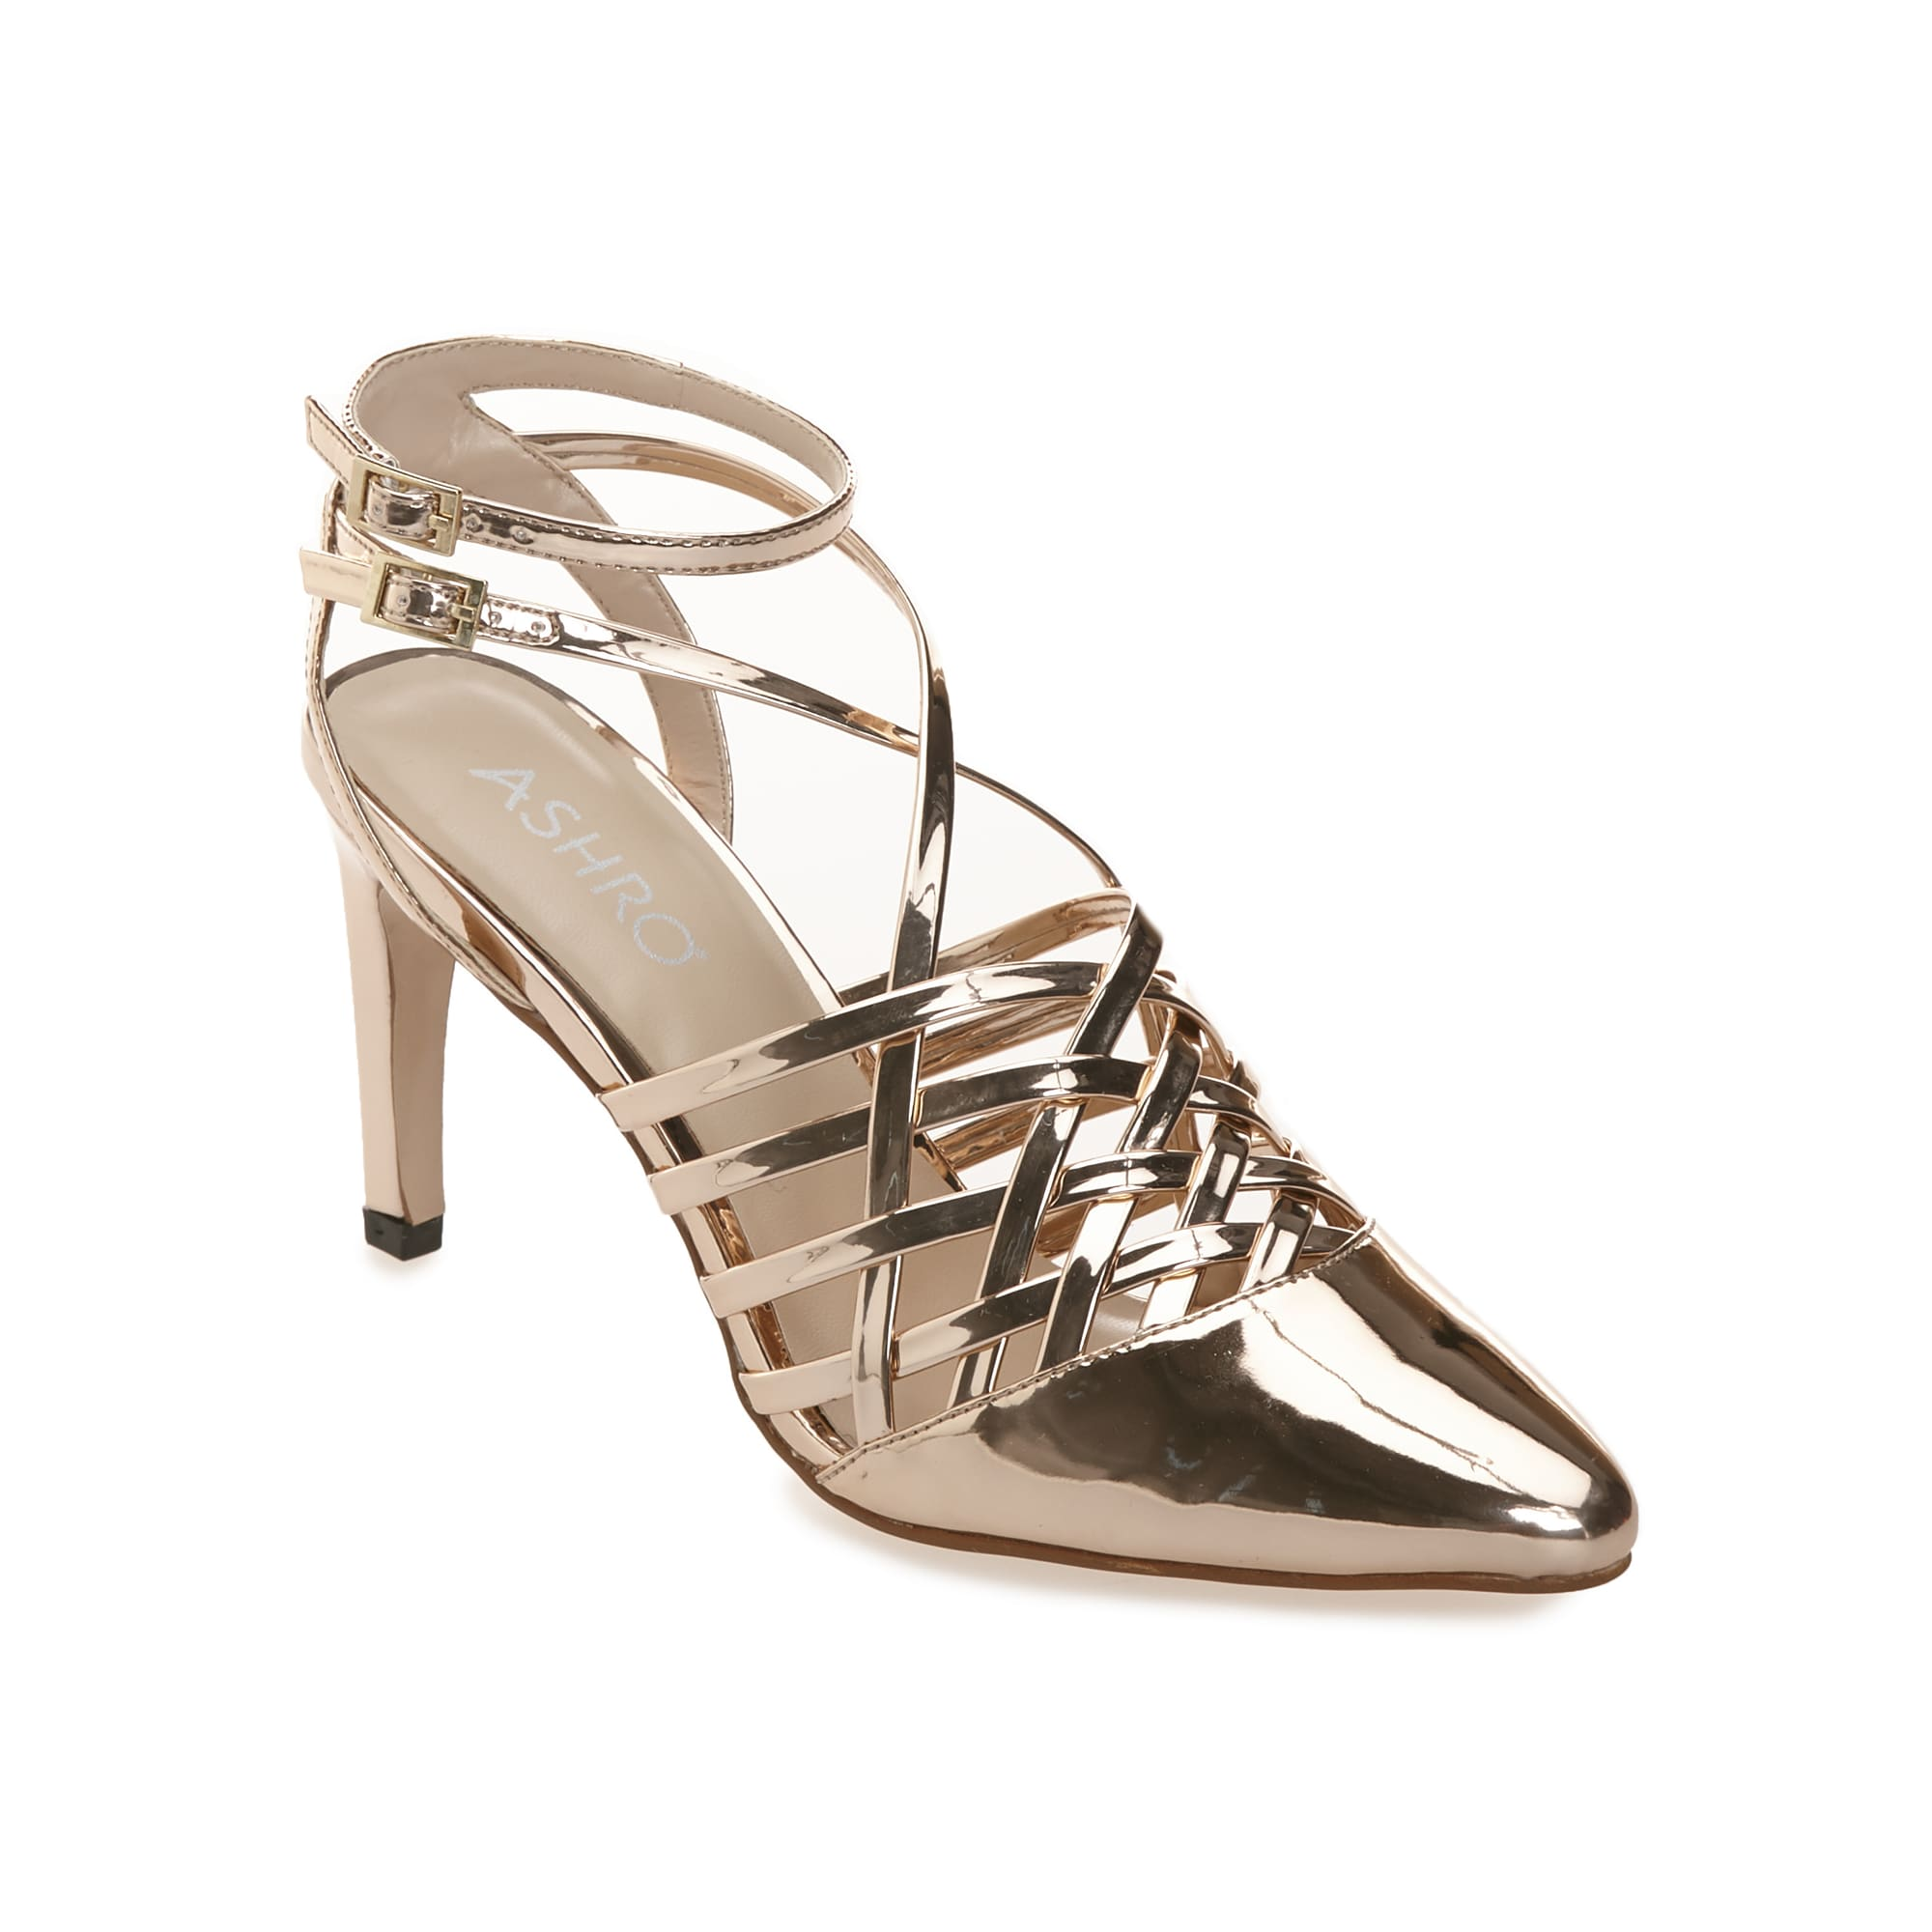 Kera metallic ankle shoe also shoes special occasion boots with heels  more ashro rh